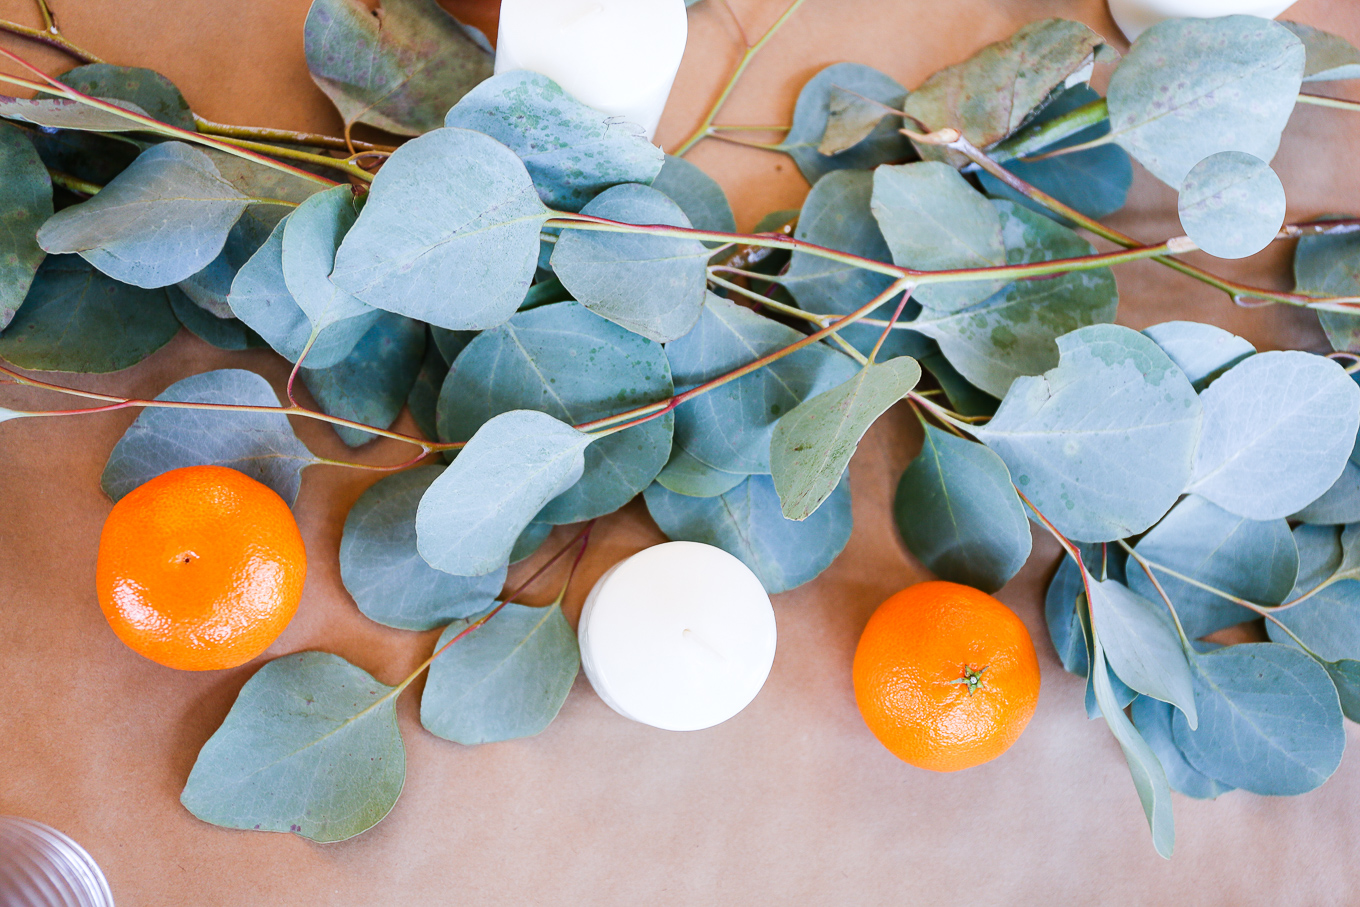 thanksgiving-decorations-of-eucalyptus-candles-oranges